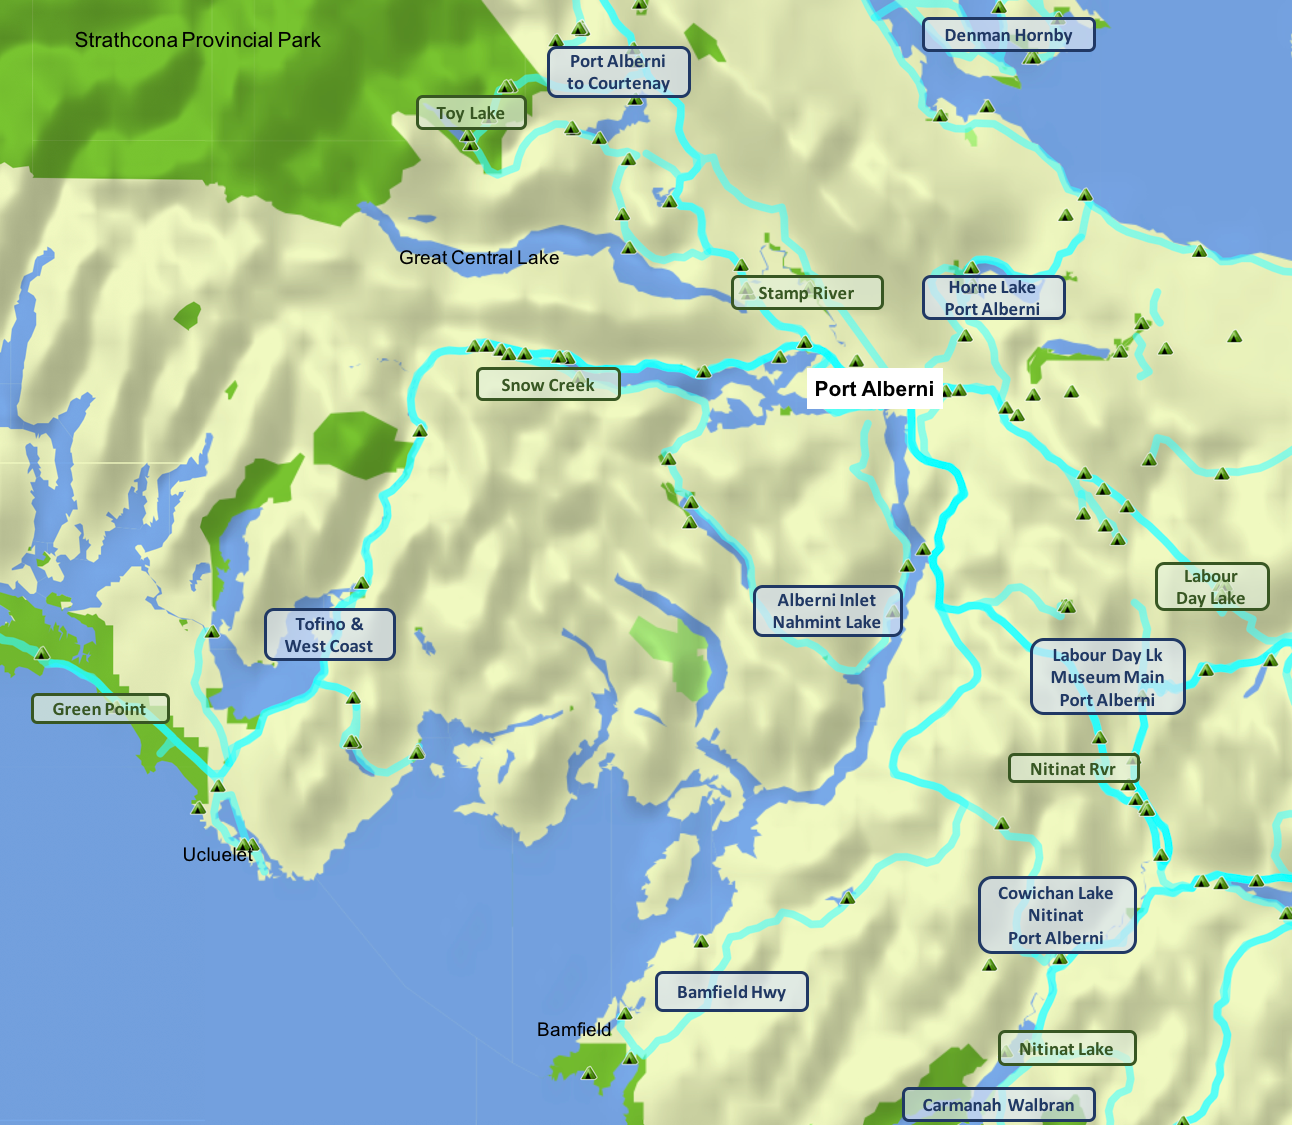 Port Alberni area - overview map